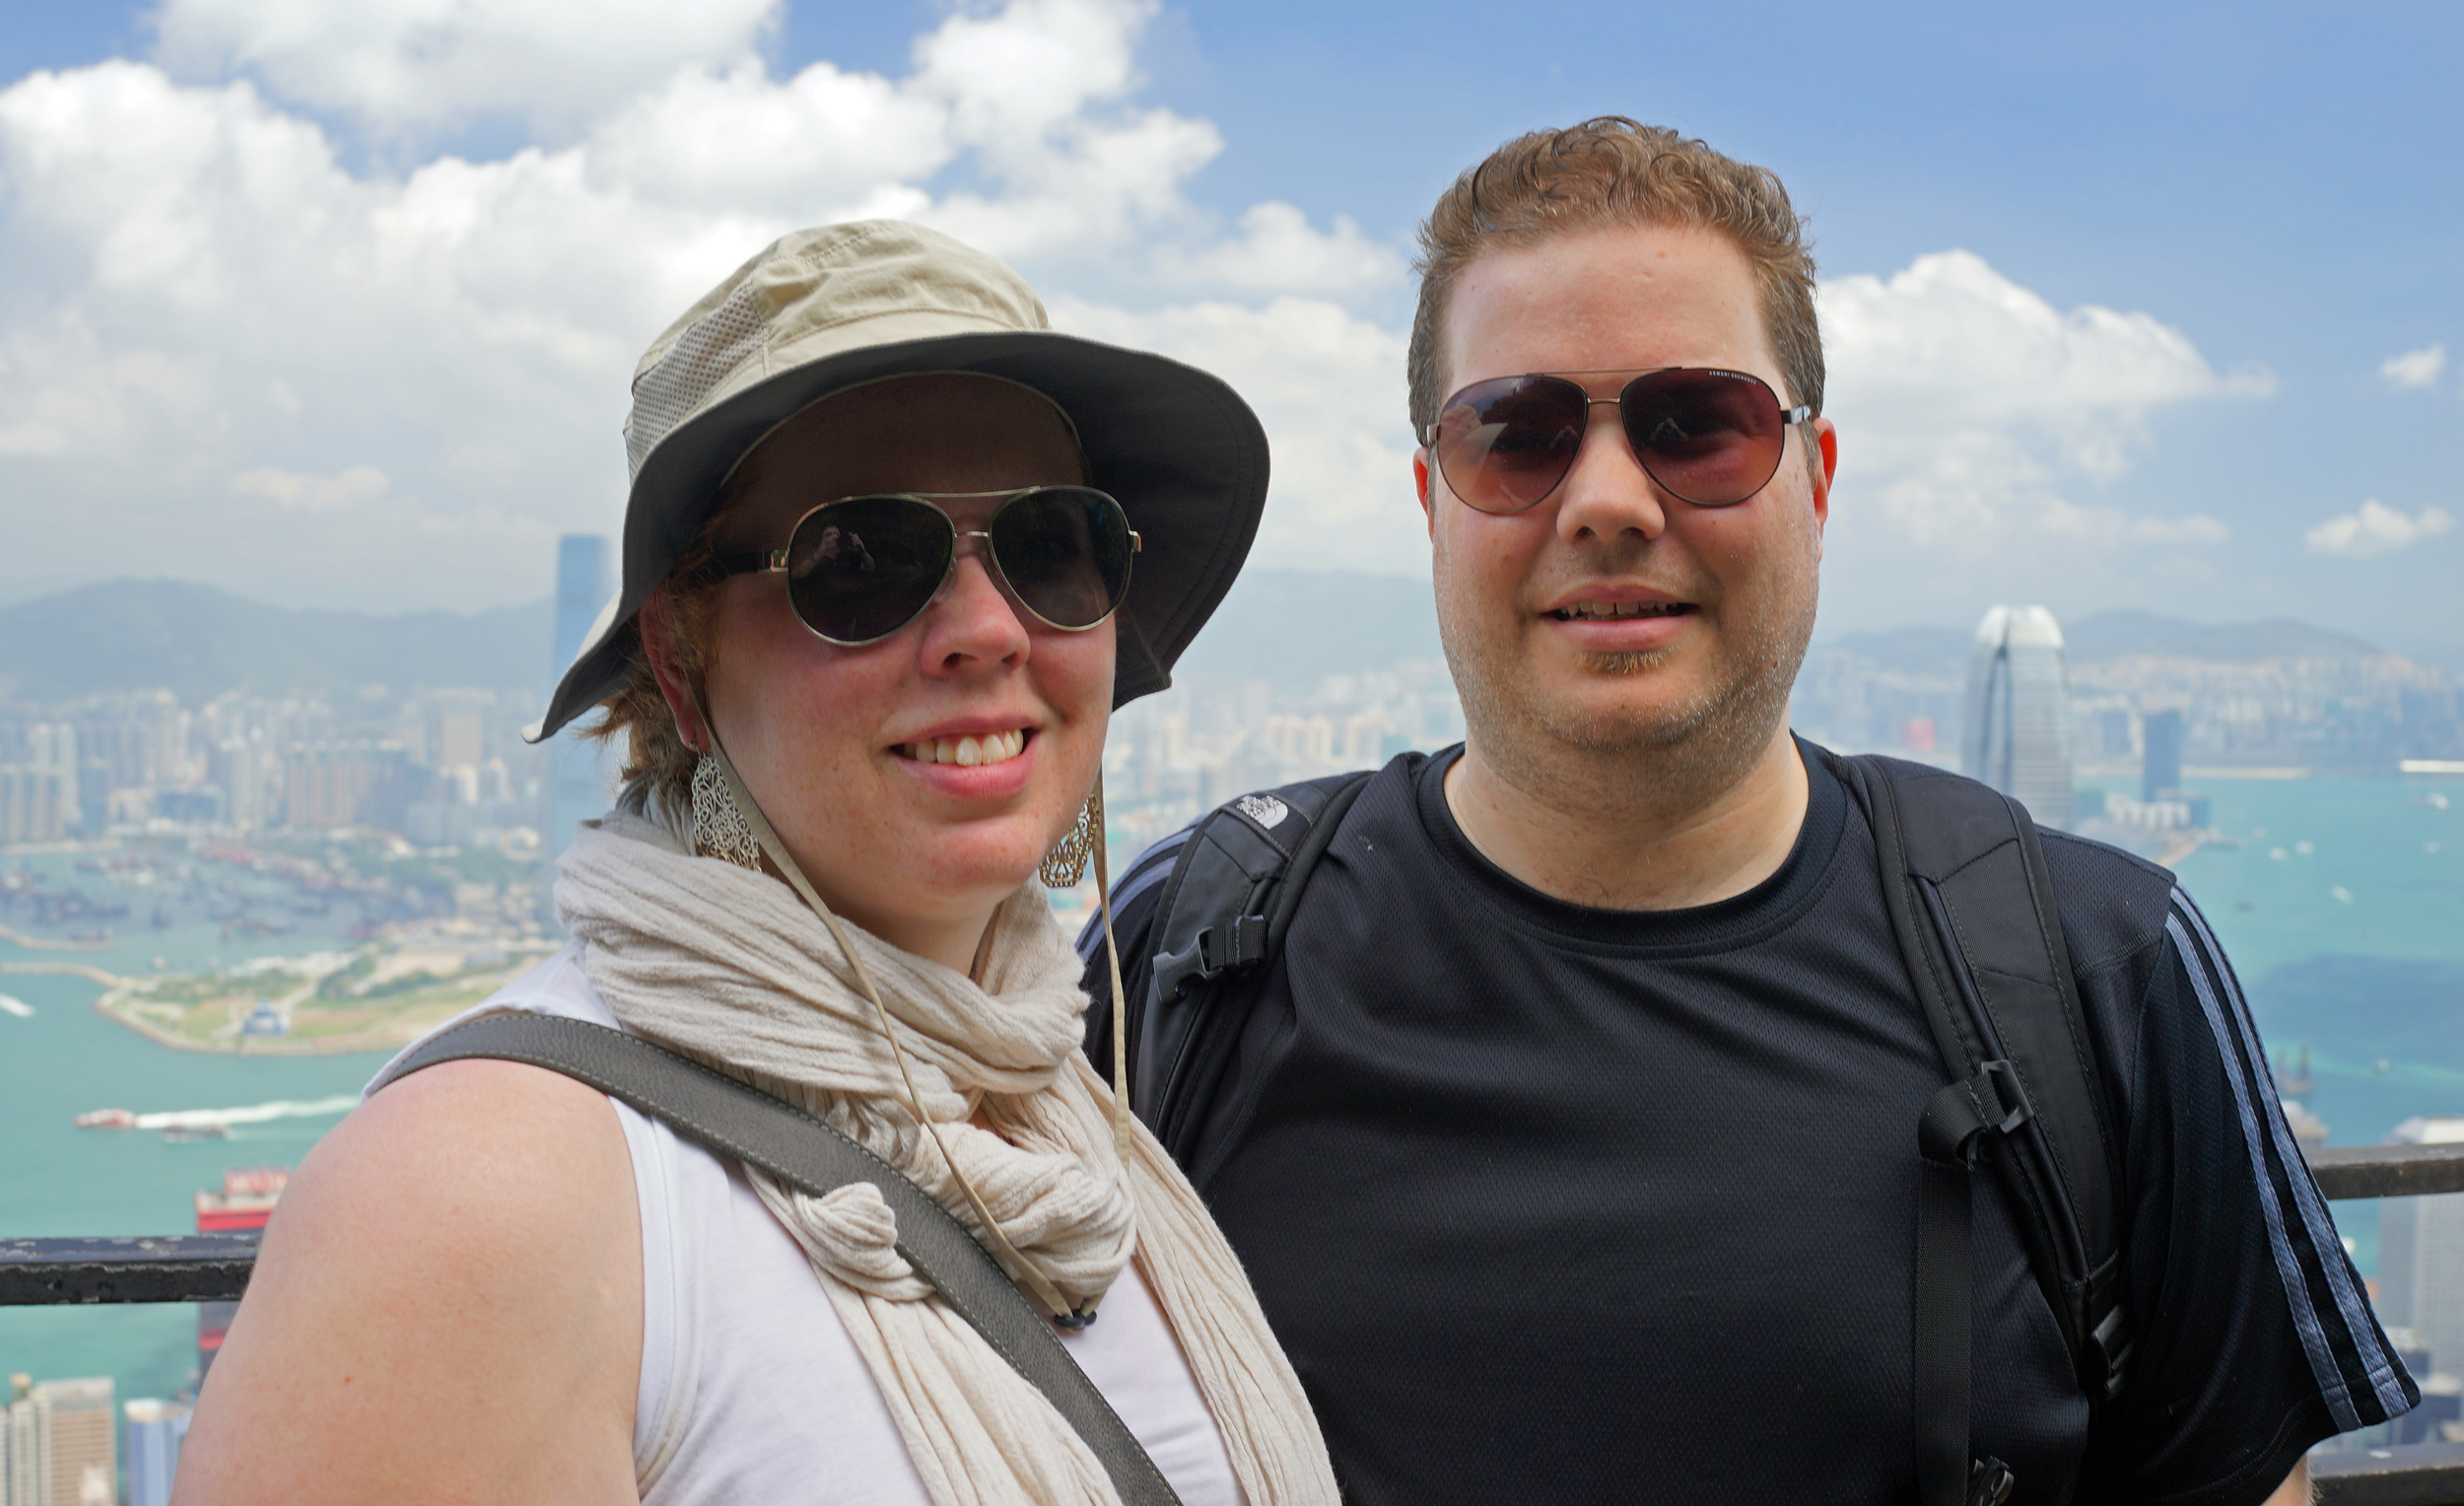 Andrea and David, just married, from Canada - enjoying the magnificent view of Hong Kong from my spot at Victoria Peak.